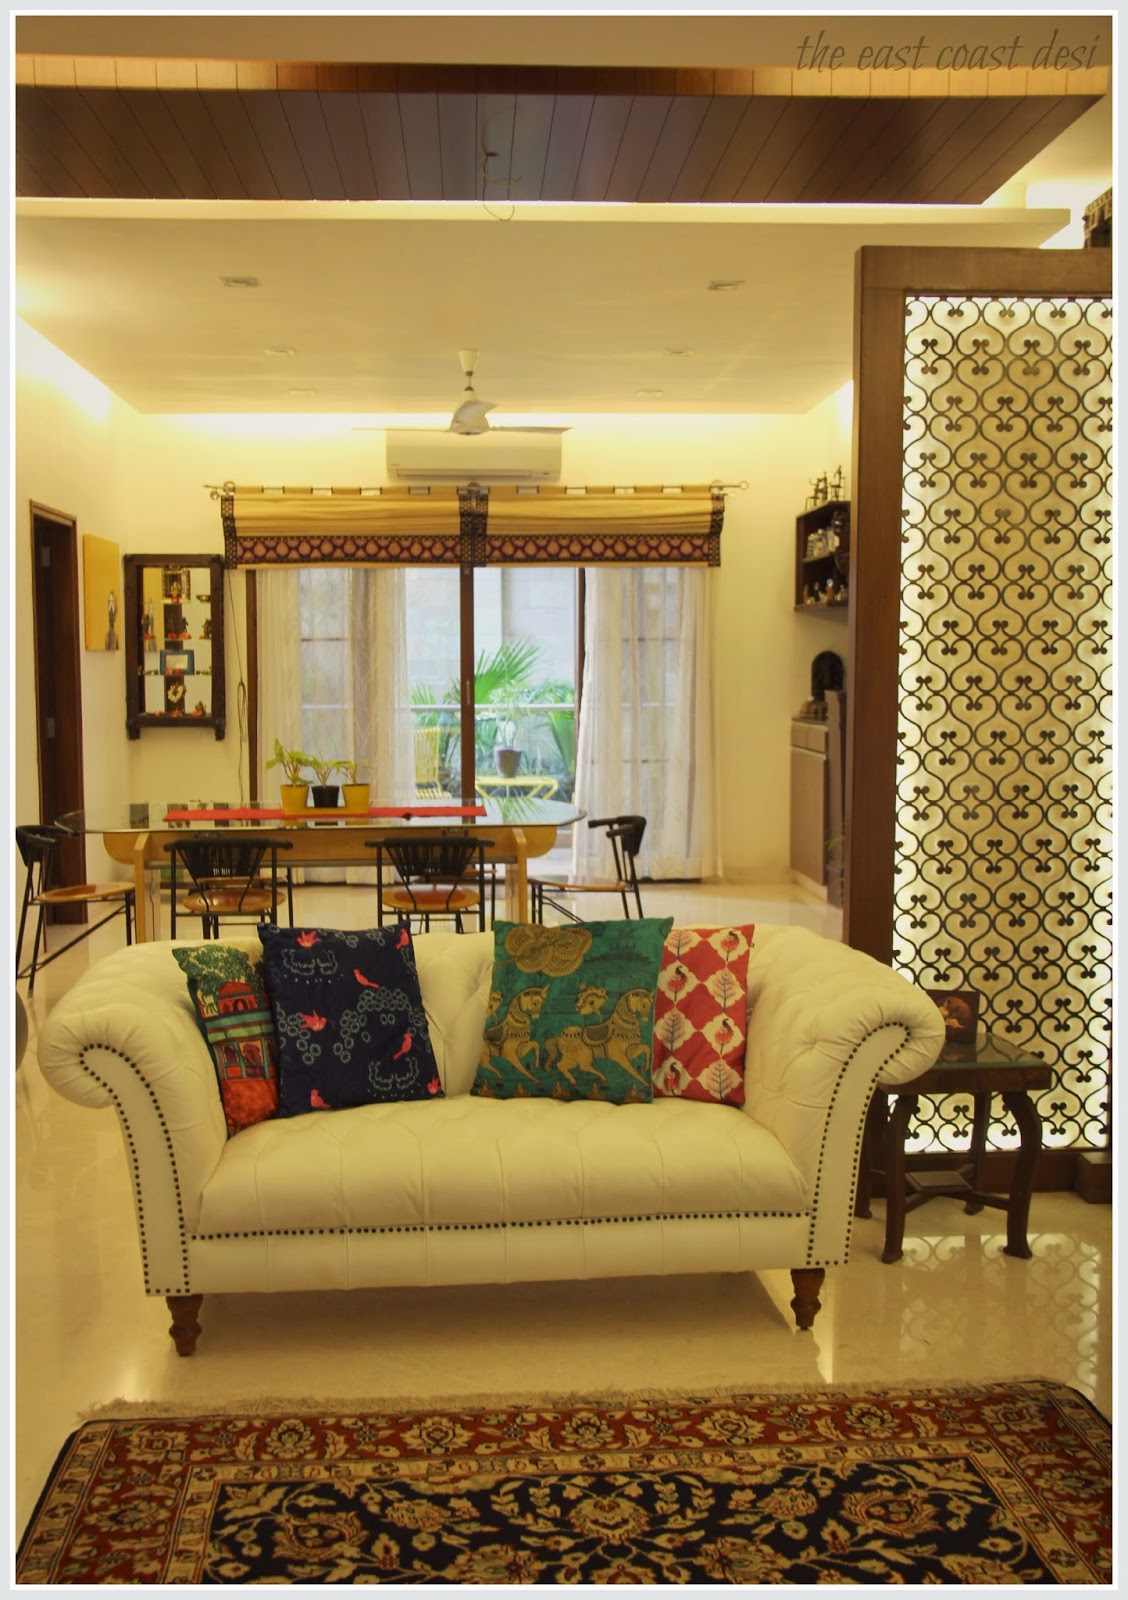 The east coast desi masterful mixing home tour - Indian house interior design pictures ...